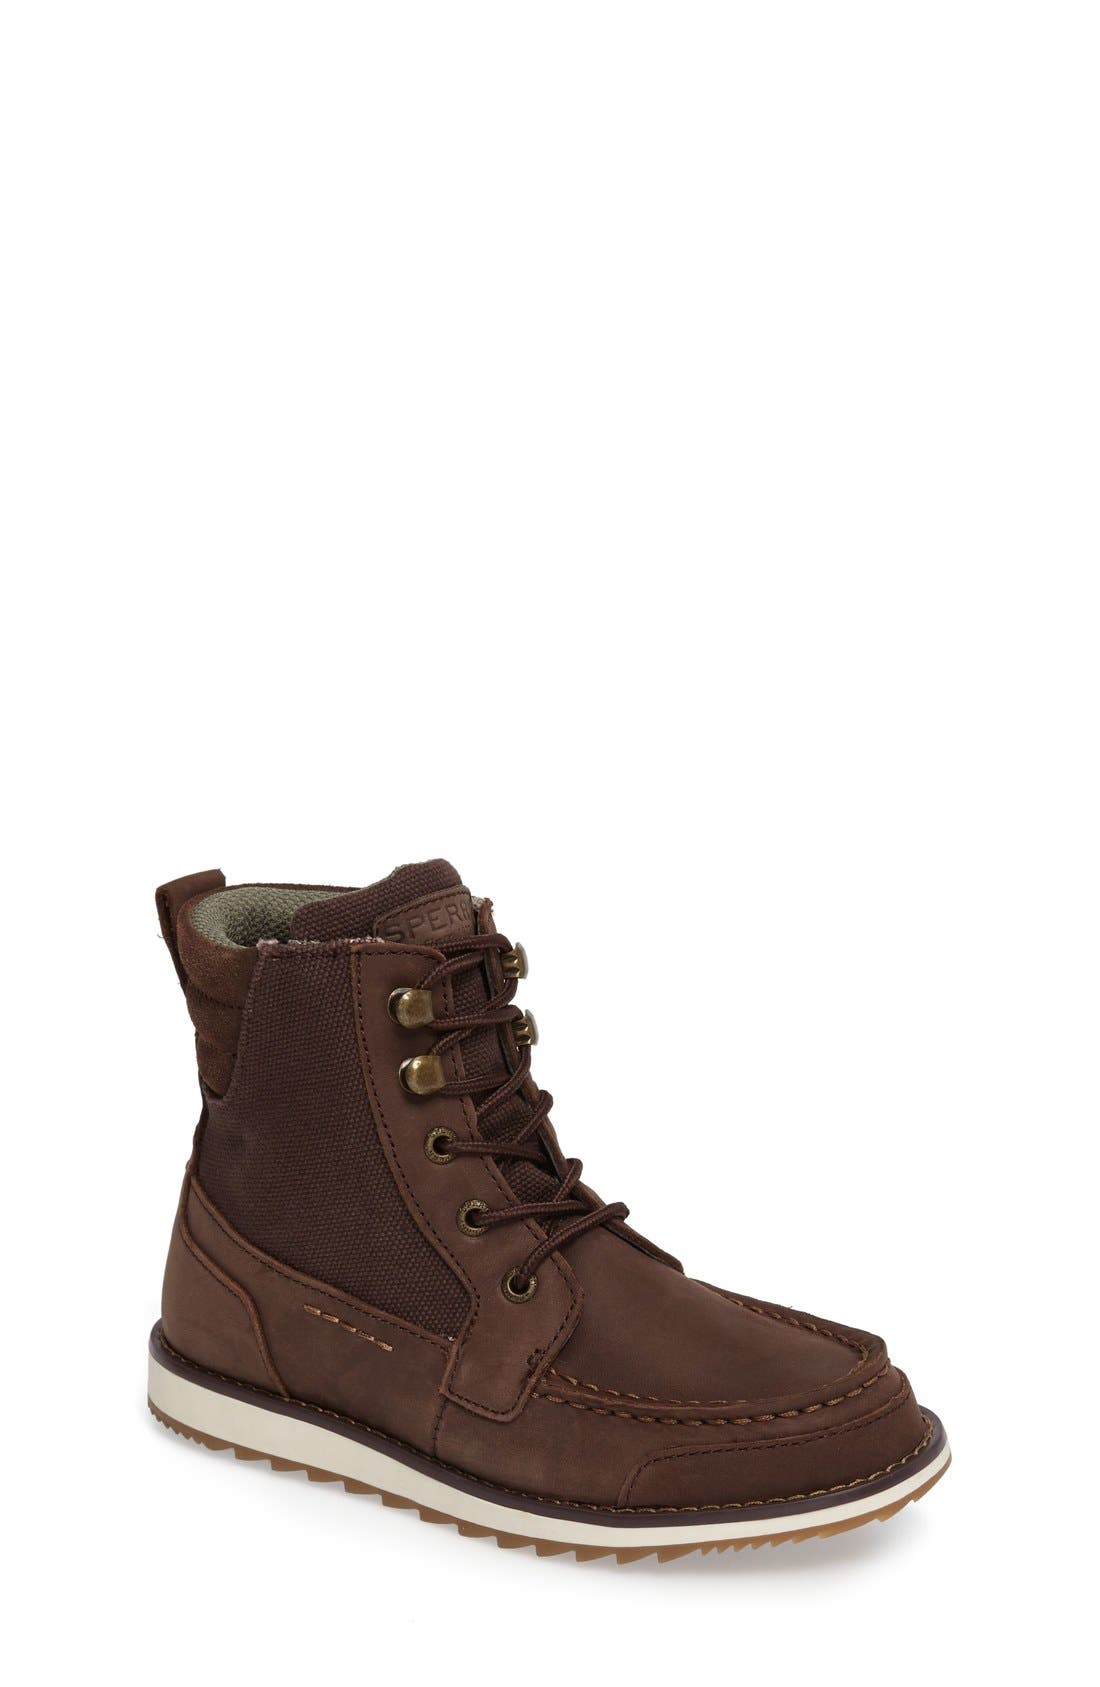 Sperry Dockyard Boot,                         Main,                         color, Brown Faux Leather